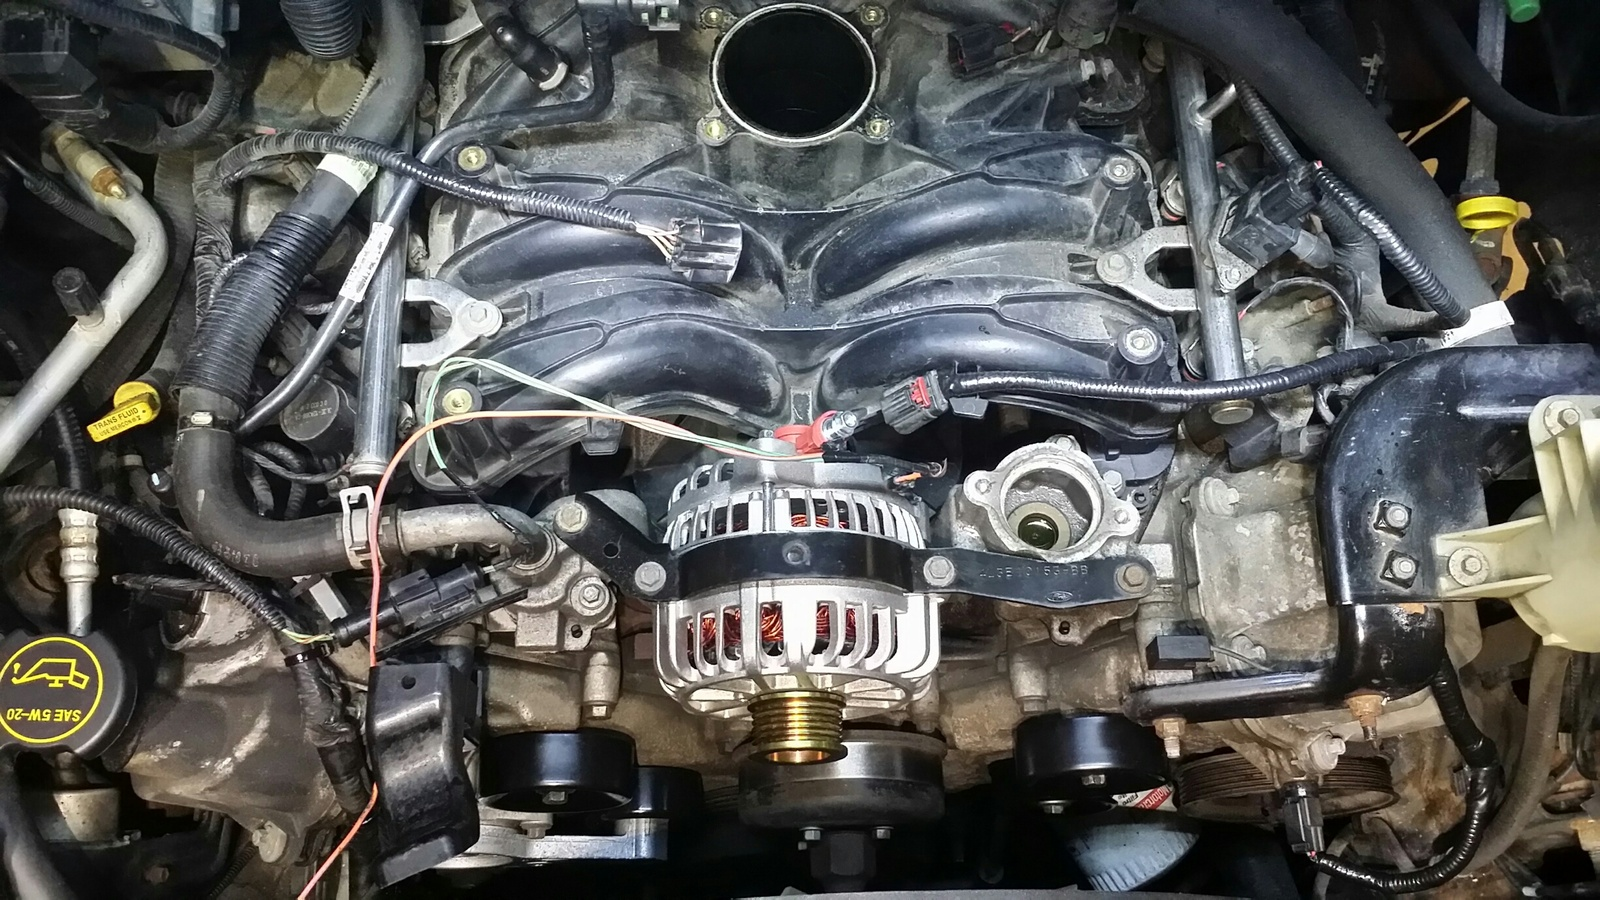 Ford F 150 Questions Alternator Battery Or Electrical Cargurus Tach Wiring Diagram On A 87 F150 In Addition Diesel Bad Idea Either Since It Will Only Take 5 10 Mins While Everything Else Is Out Of The Way See Attached Pic I Did This Job Just Couple Weeks Ago